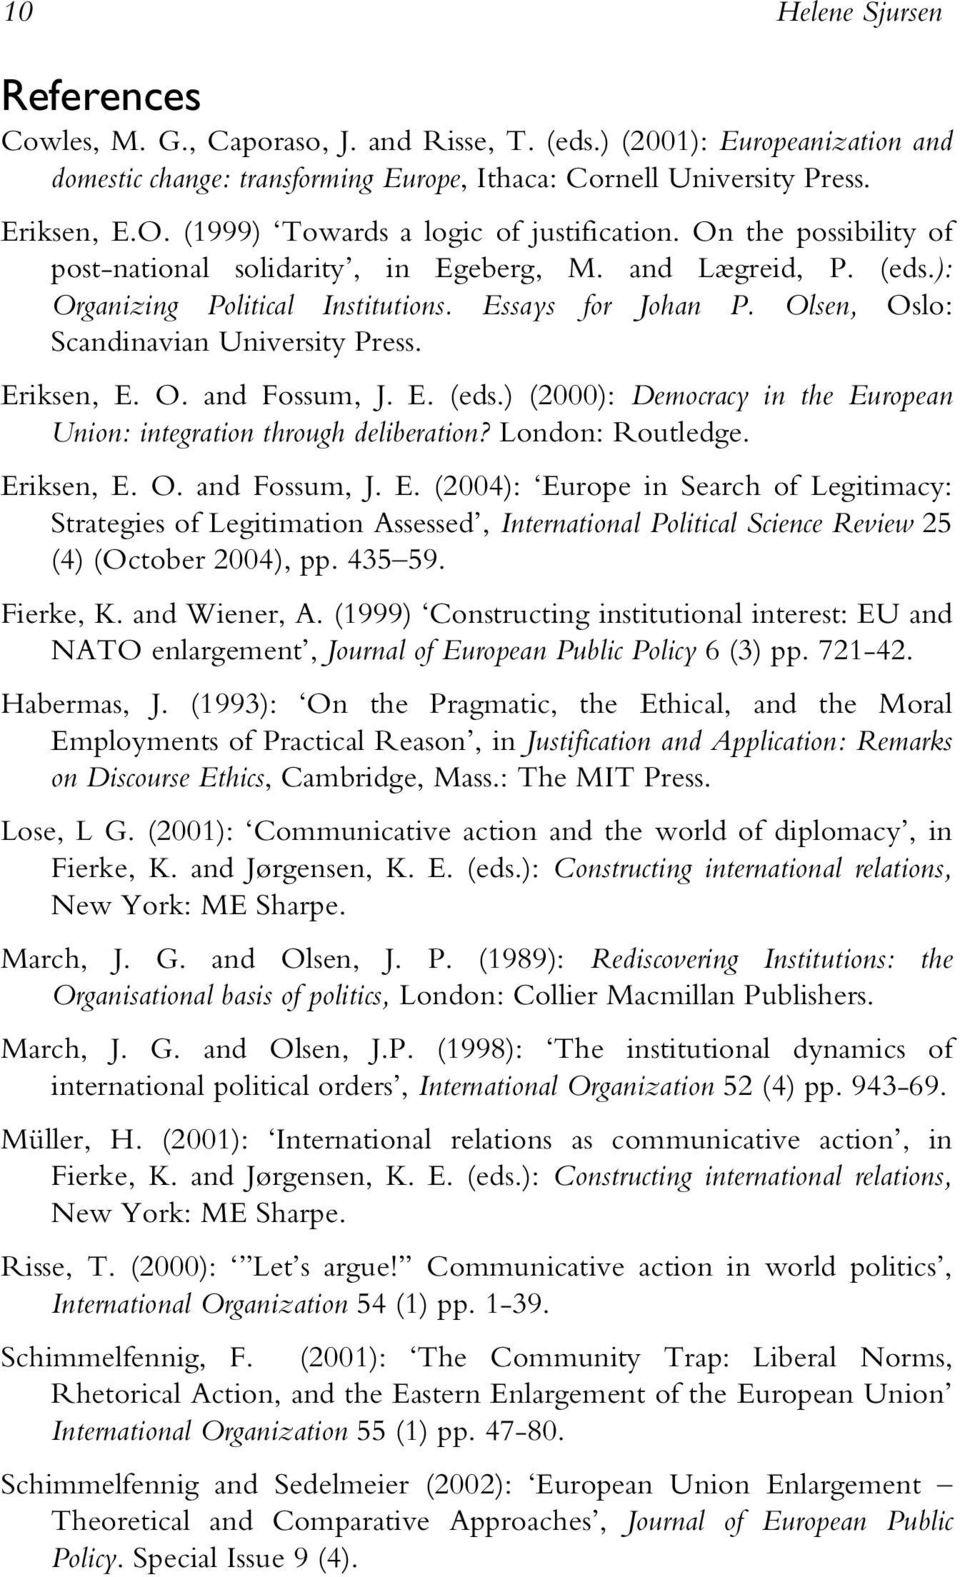 Olsen, Oslo: Scandinavian University Press. Eriksen, E. O. and Fossum, J. E. (eds.) (2000): Democracy in the European Union: integration through deliberation? London: Routledge. Eriksen, E. O. and Fossum, J. E. (2004): Europe in Search of Legitimacy: Strategies of Legitimation Assessed, International Political Science Review 25 (4) (October 2004), pp.